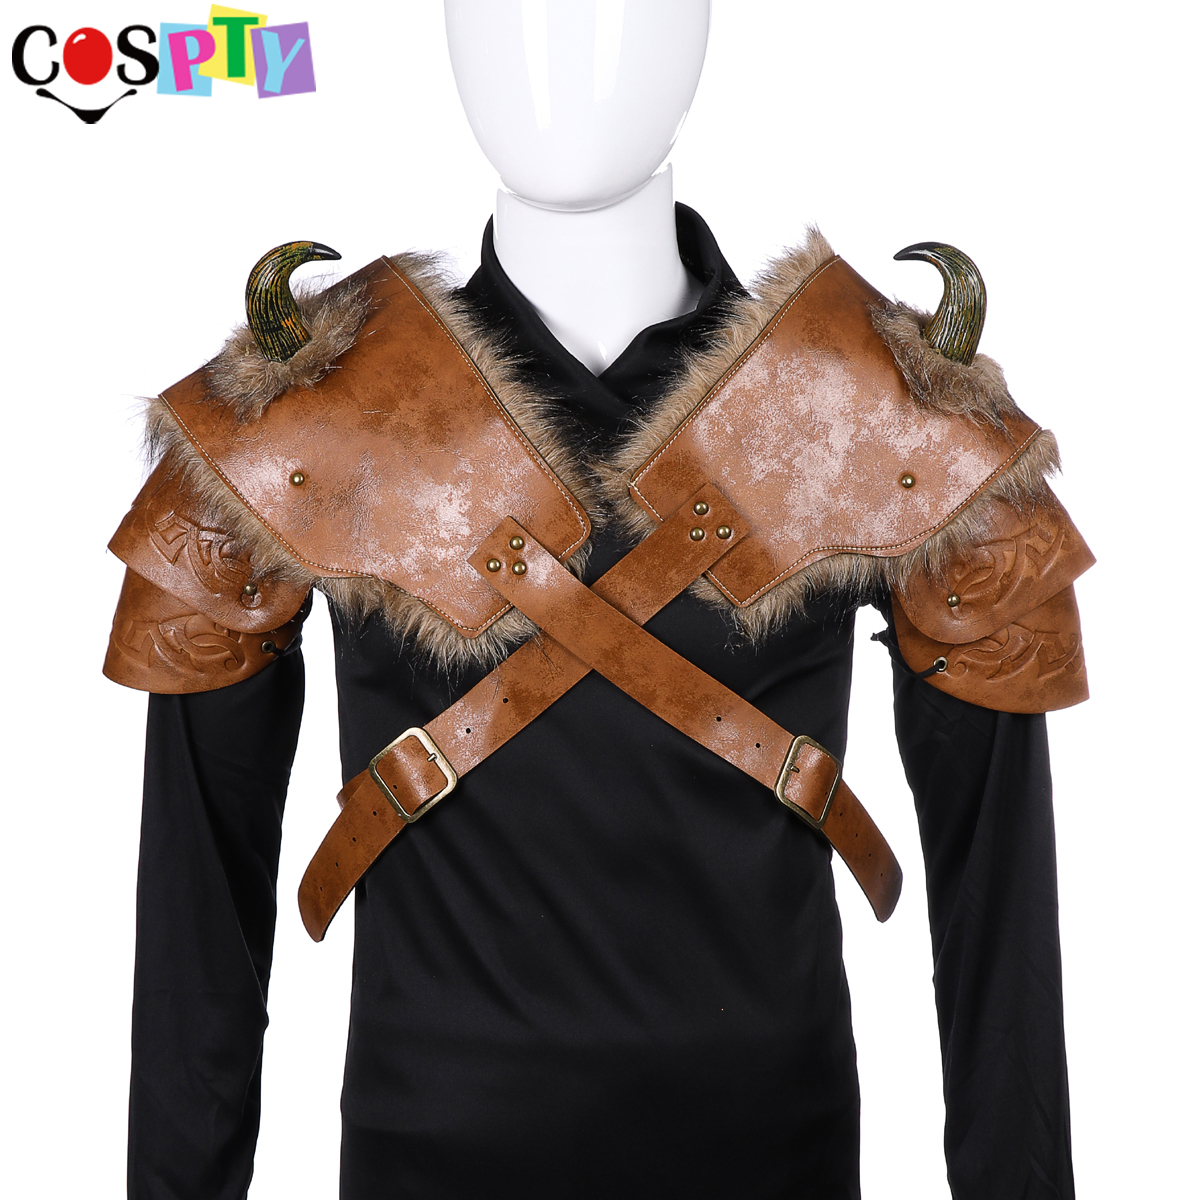 Cospty Medieval Warrior Men Armour Costume Cosplay LARP Adult PU Leather Brown Fur Viking Shoulder Armor With Horn